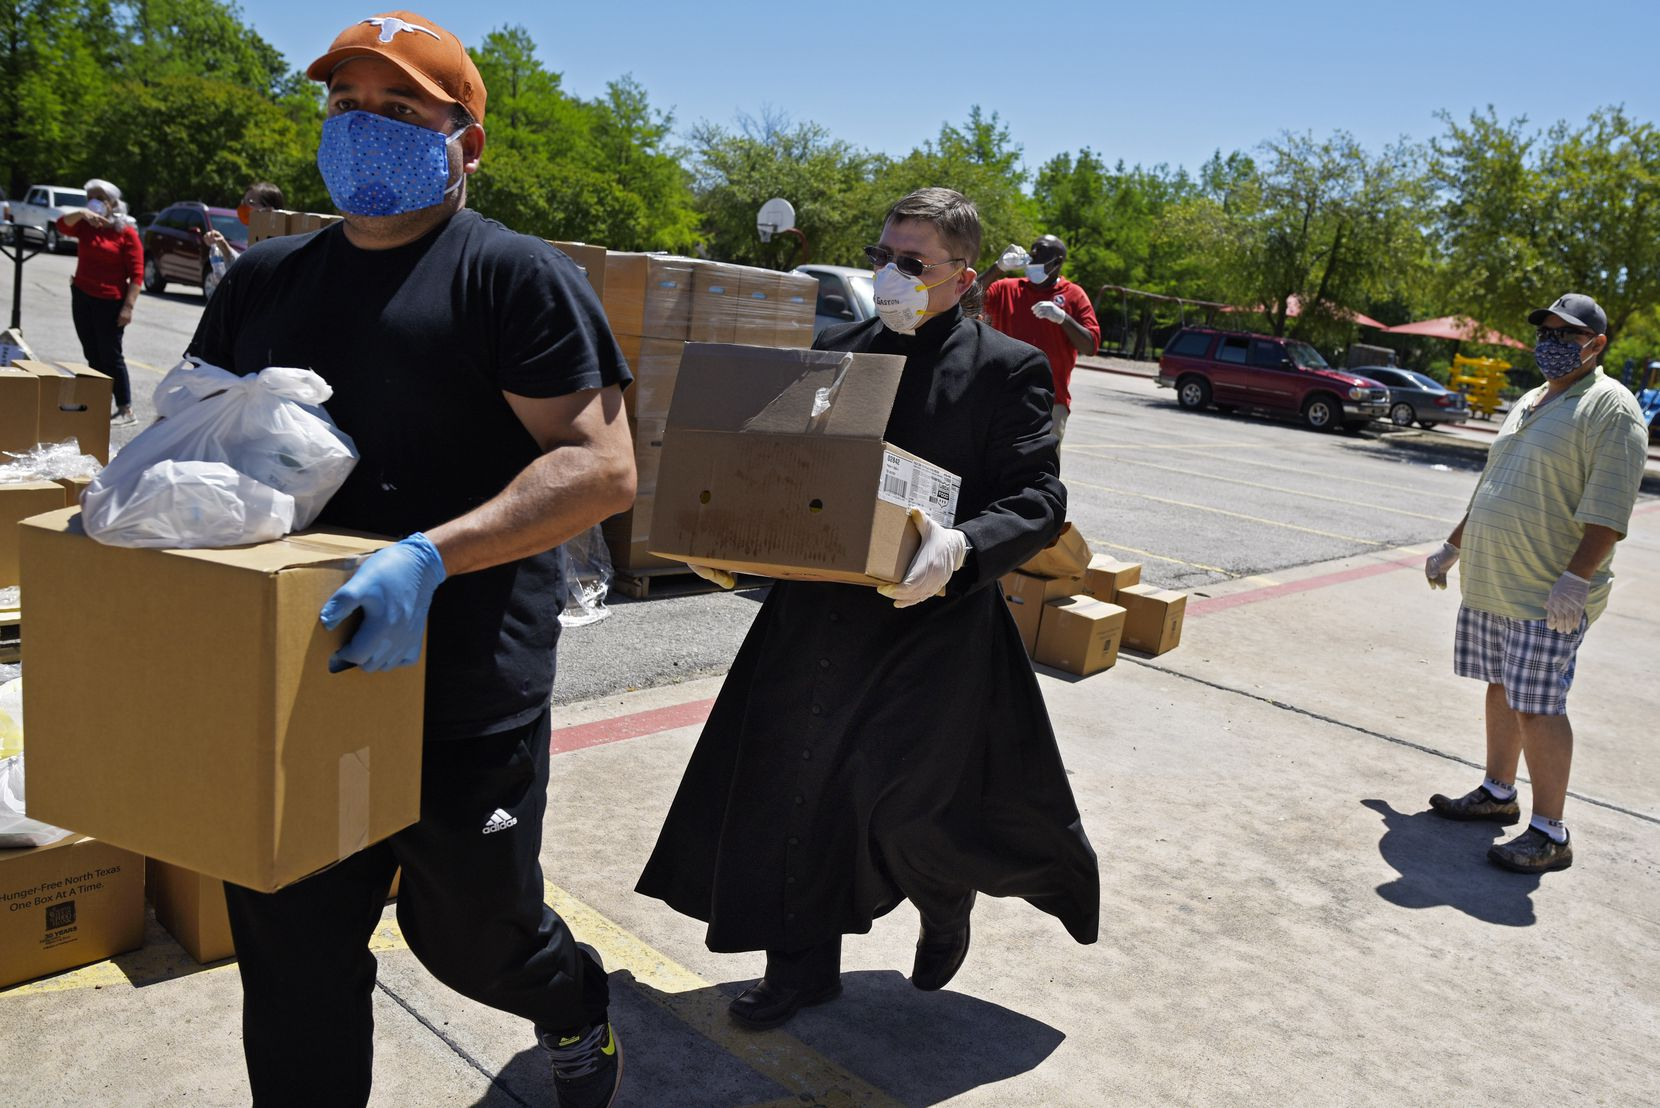 Catholic volunteers from Dallas Area Interfaith and Pastor Gaston Giacinti (center) carry boxes of food to give to families in need during a drive-through  delivery at St. Bernard of Clairvaux Catholic Church in Dallas on April 29, 2020.